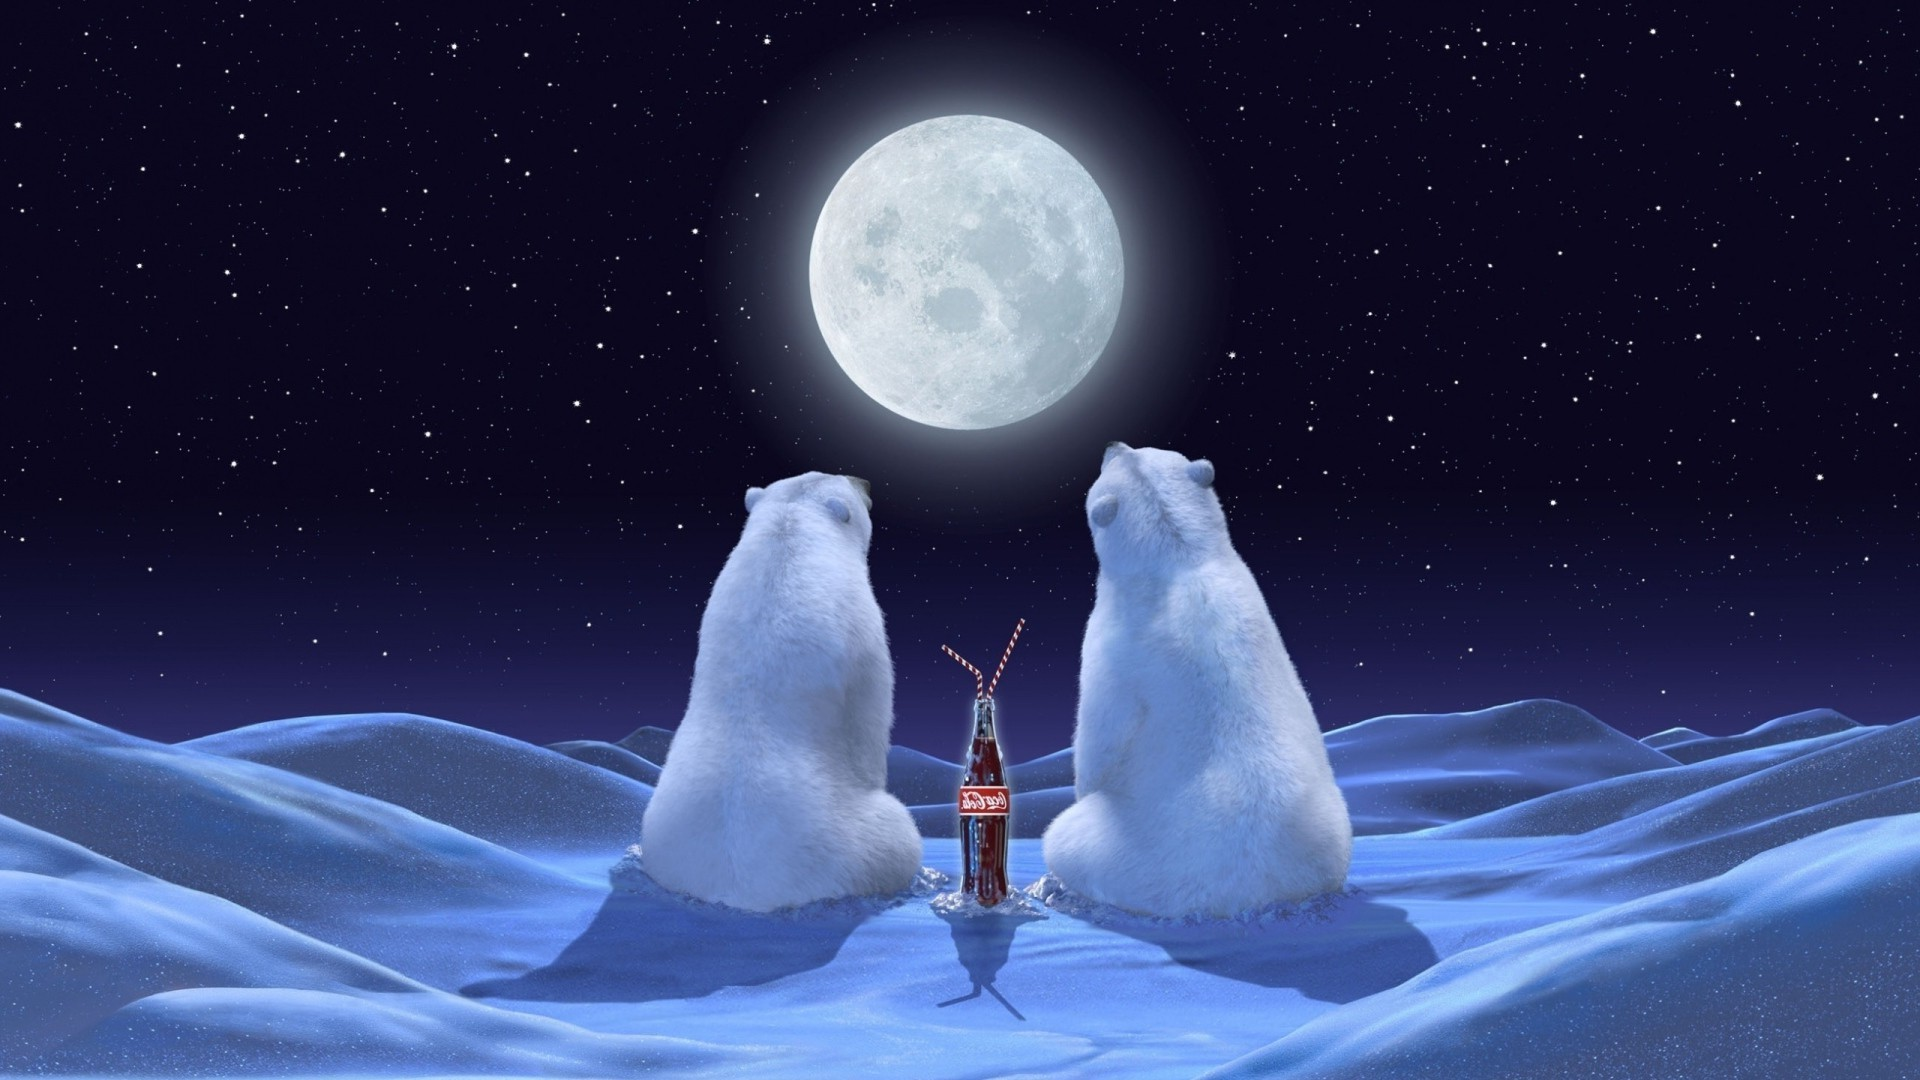 Polar Bears Coca Cola Stars Moon Android Wallpapers